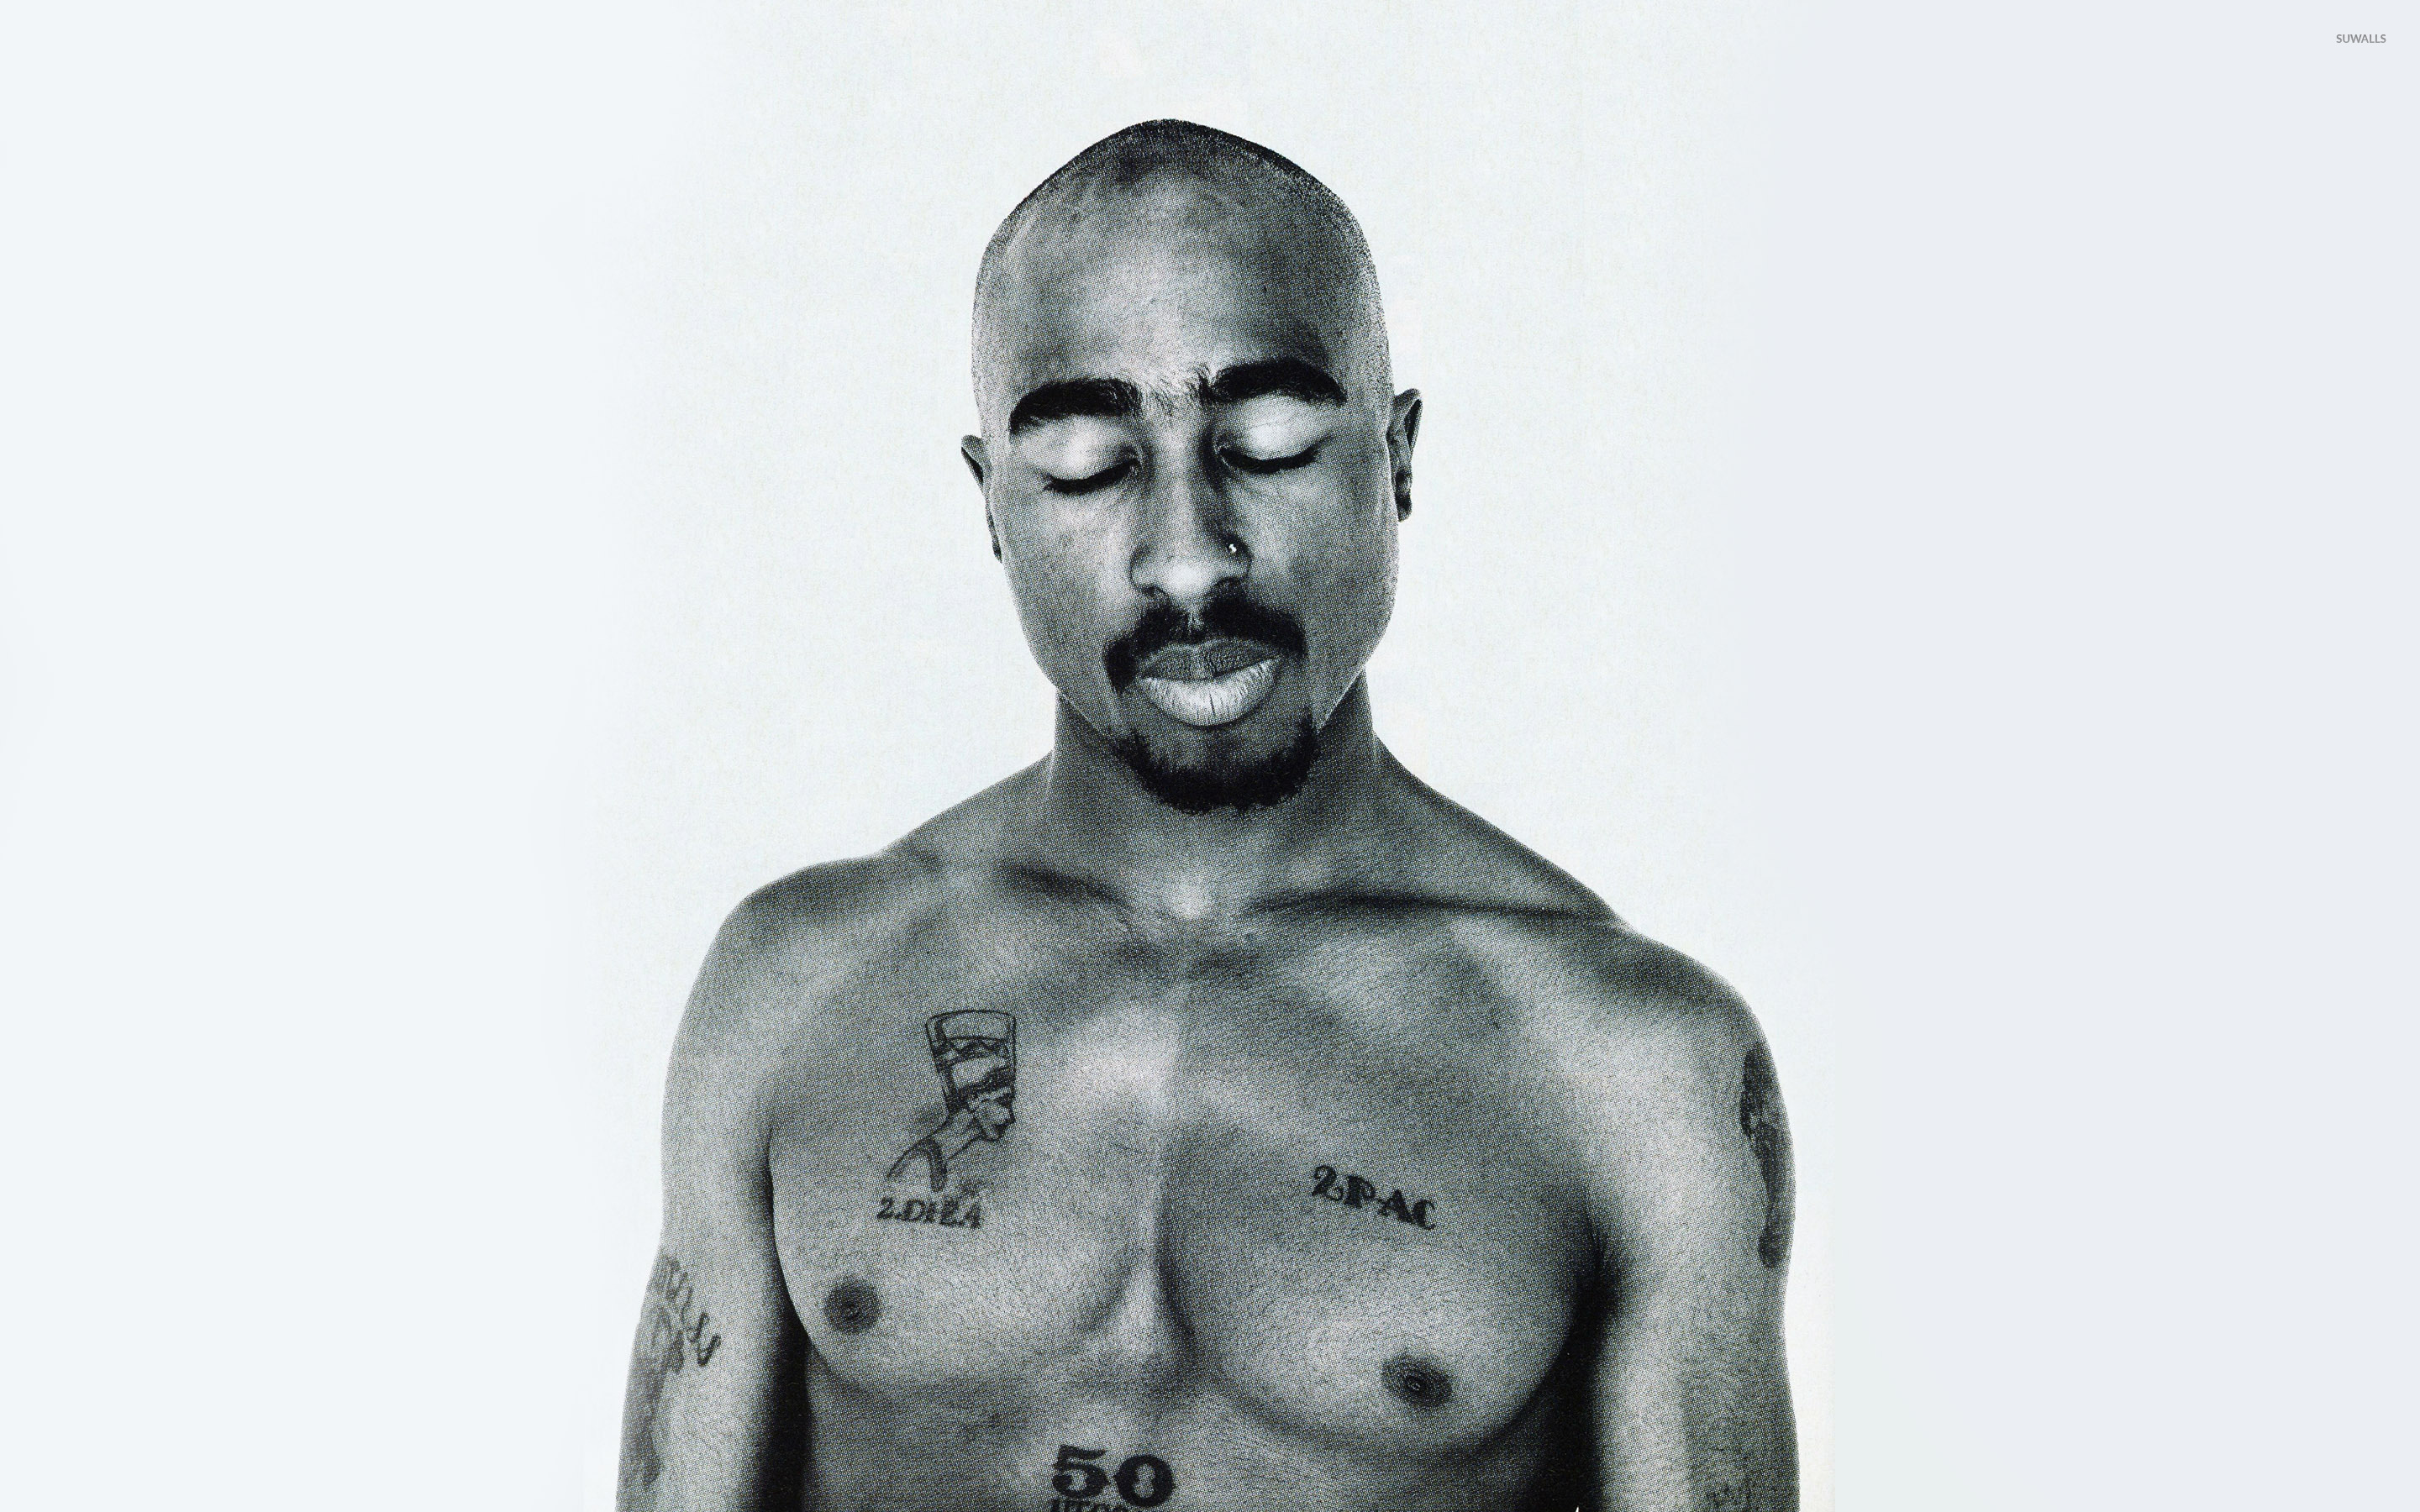 2pac wallpaper music wallpapers 29333 2pac wallpaper altavistaventures Image collections